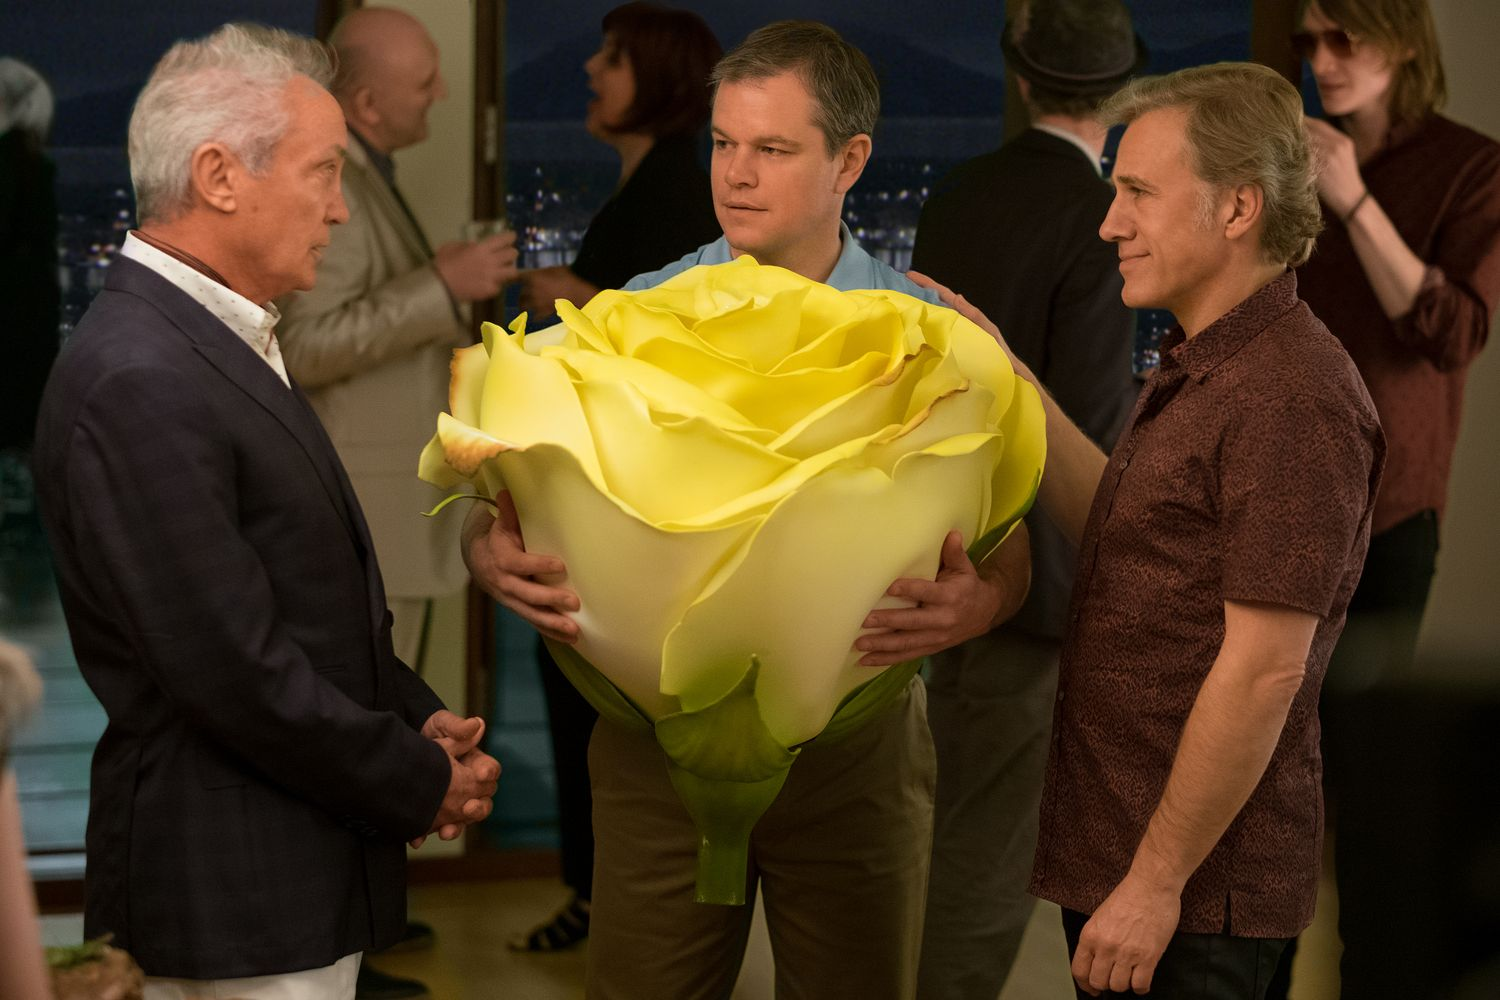 Udo Kier plays Konrad, Christoph Waltz plays Dusan and Matt Damon plays Paul in Downsizing from Paramount Pictures.